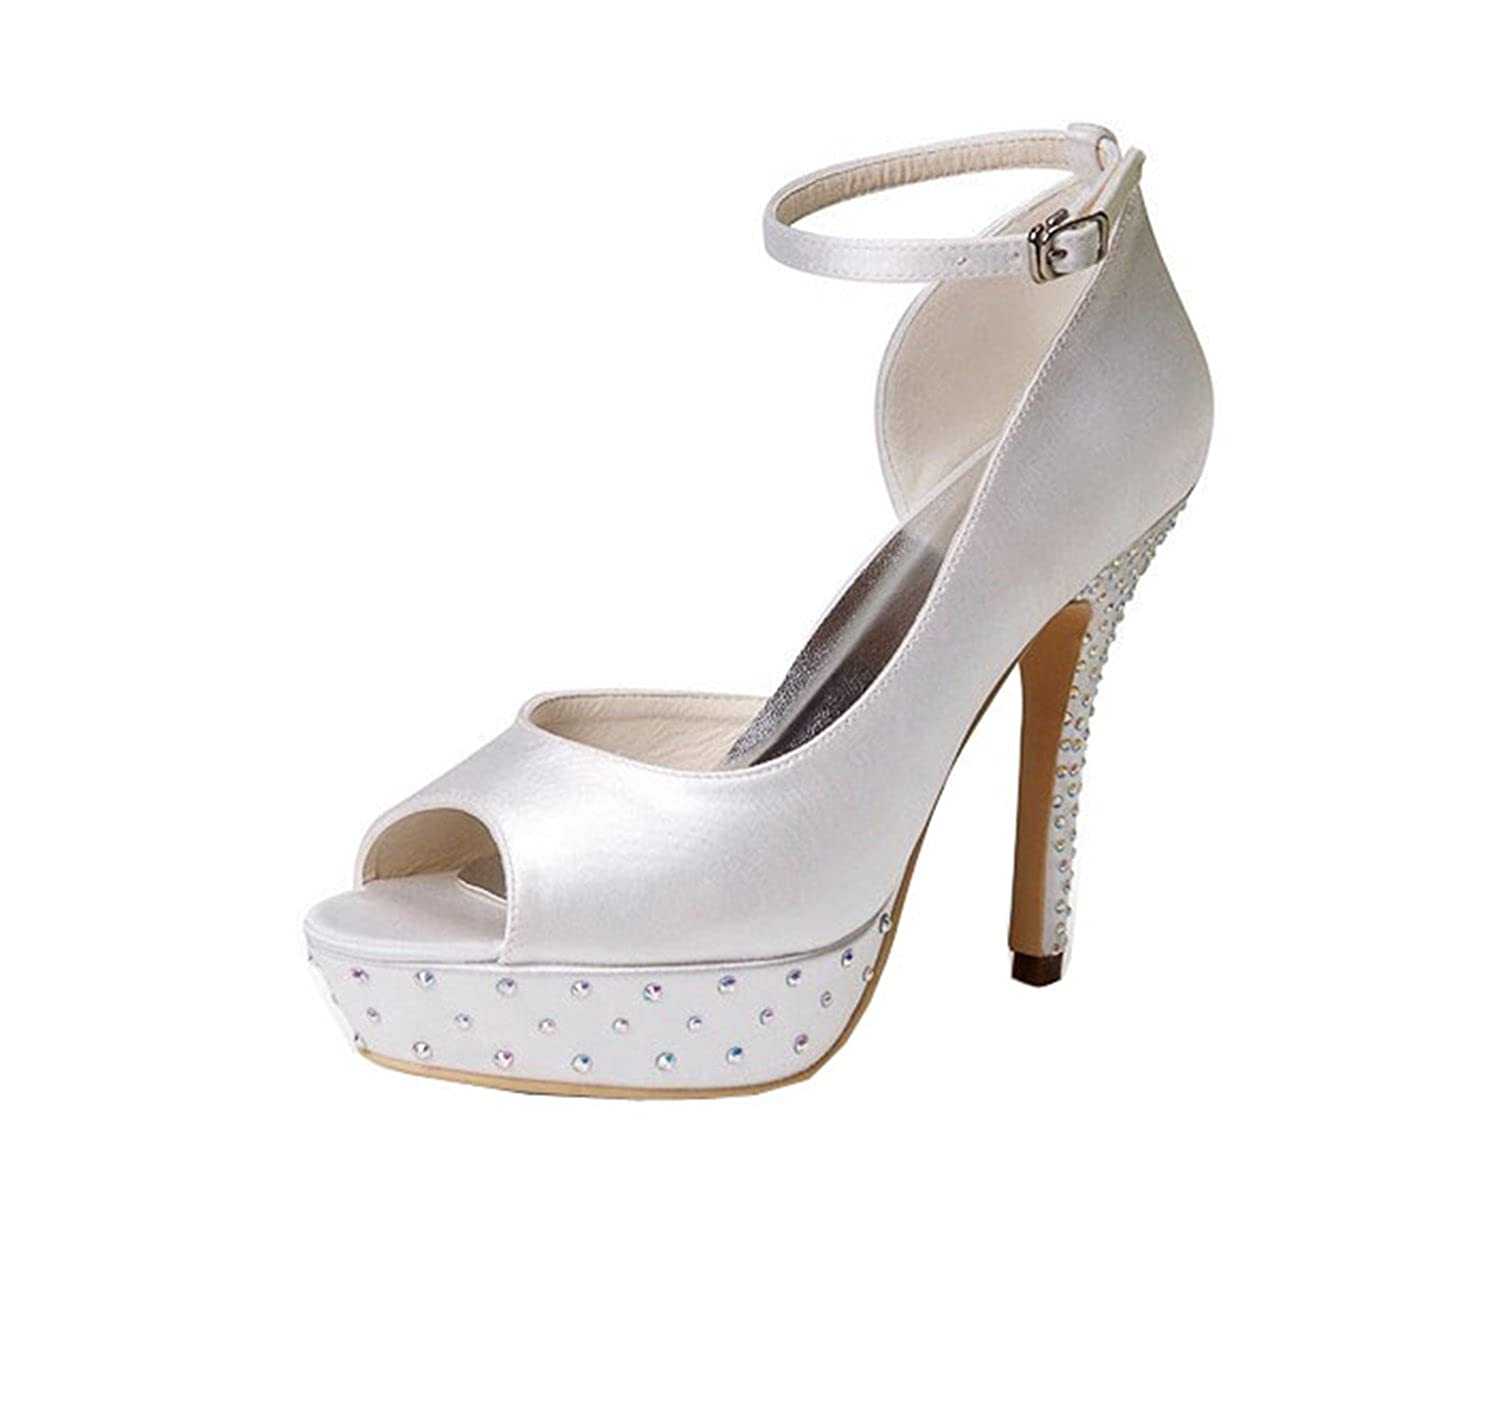 Minitoo , Sandales , pour femme Sandales White-12cm 19737 Heel 4a716ca - conorscully.space